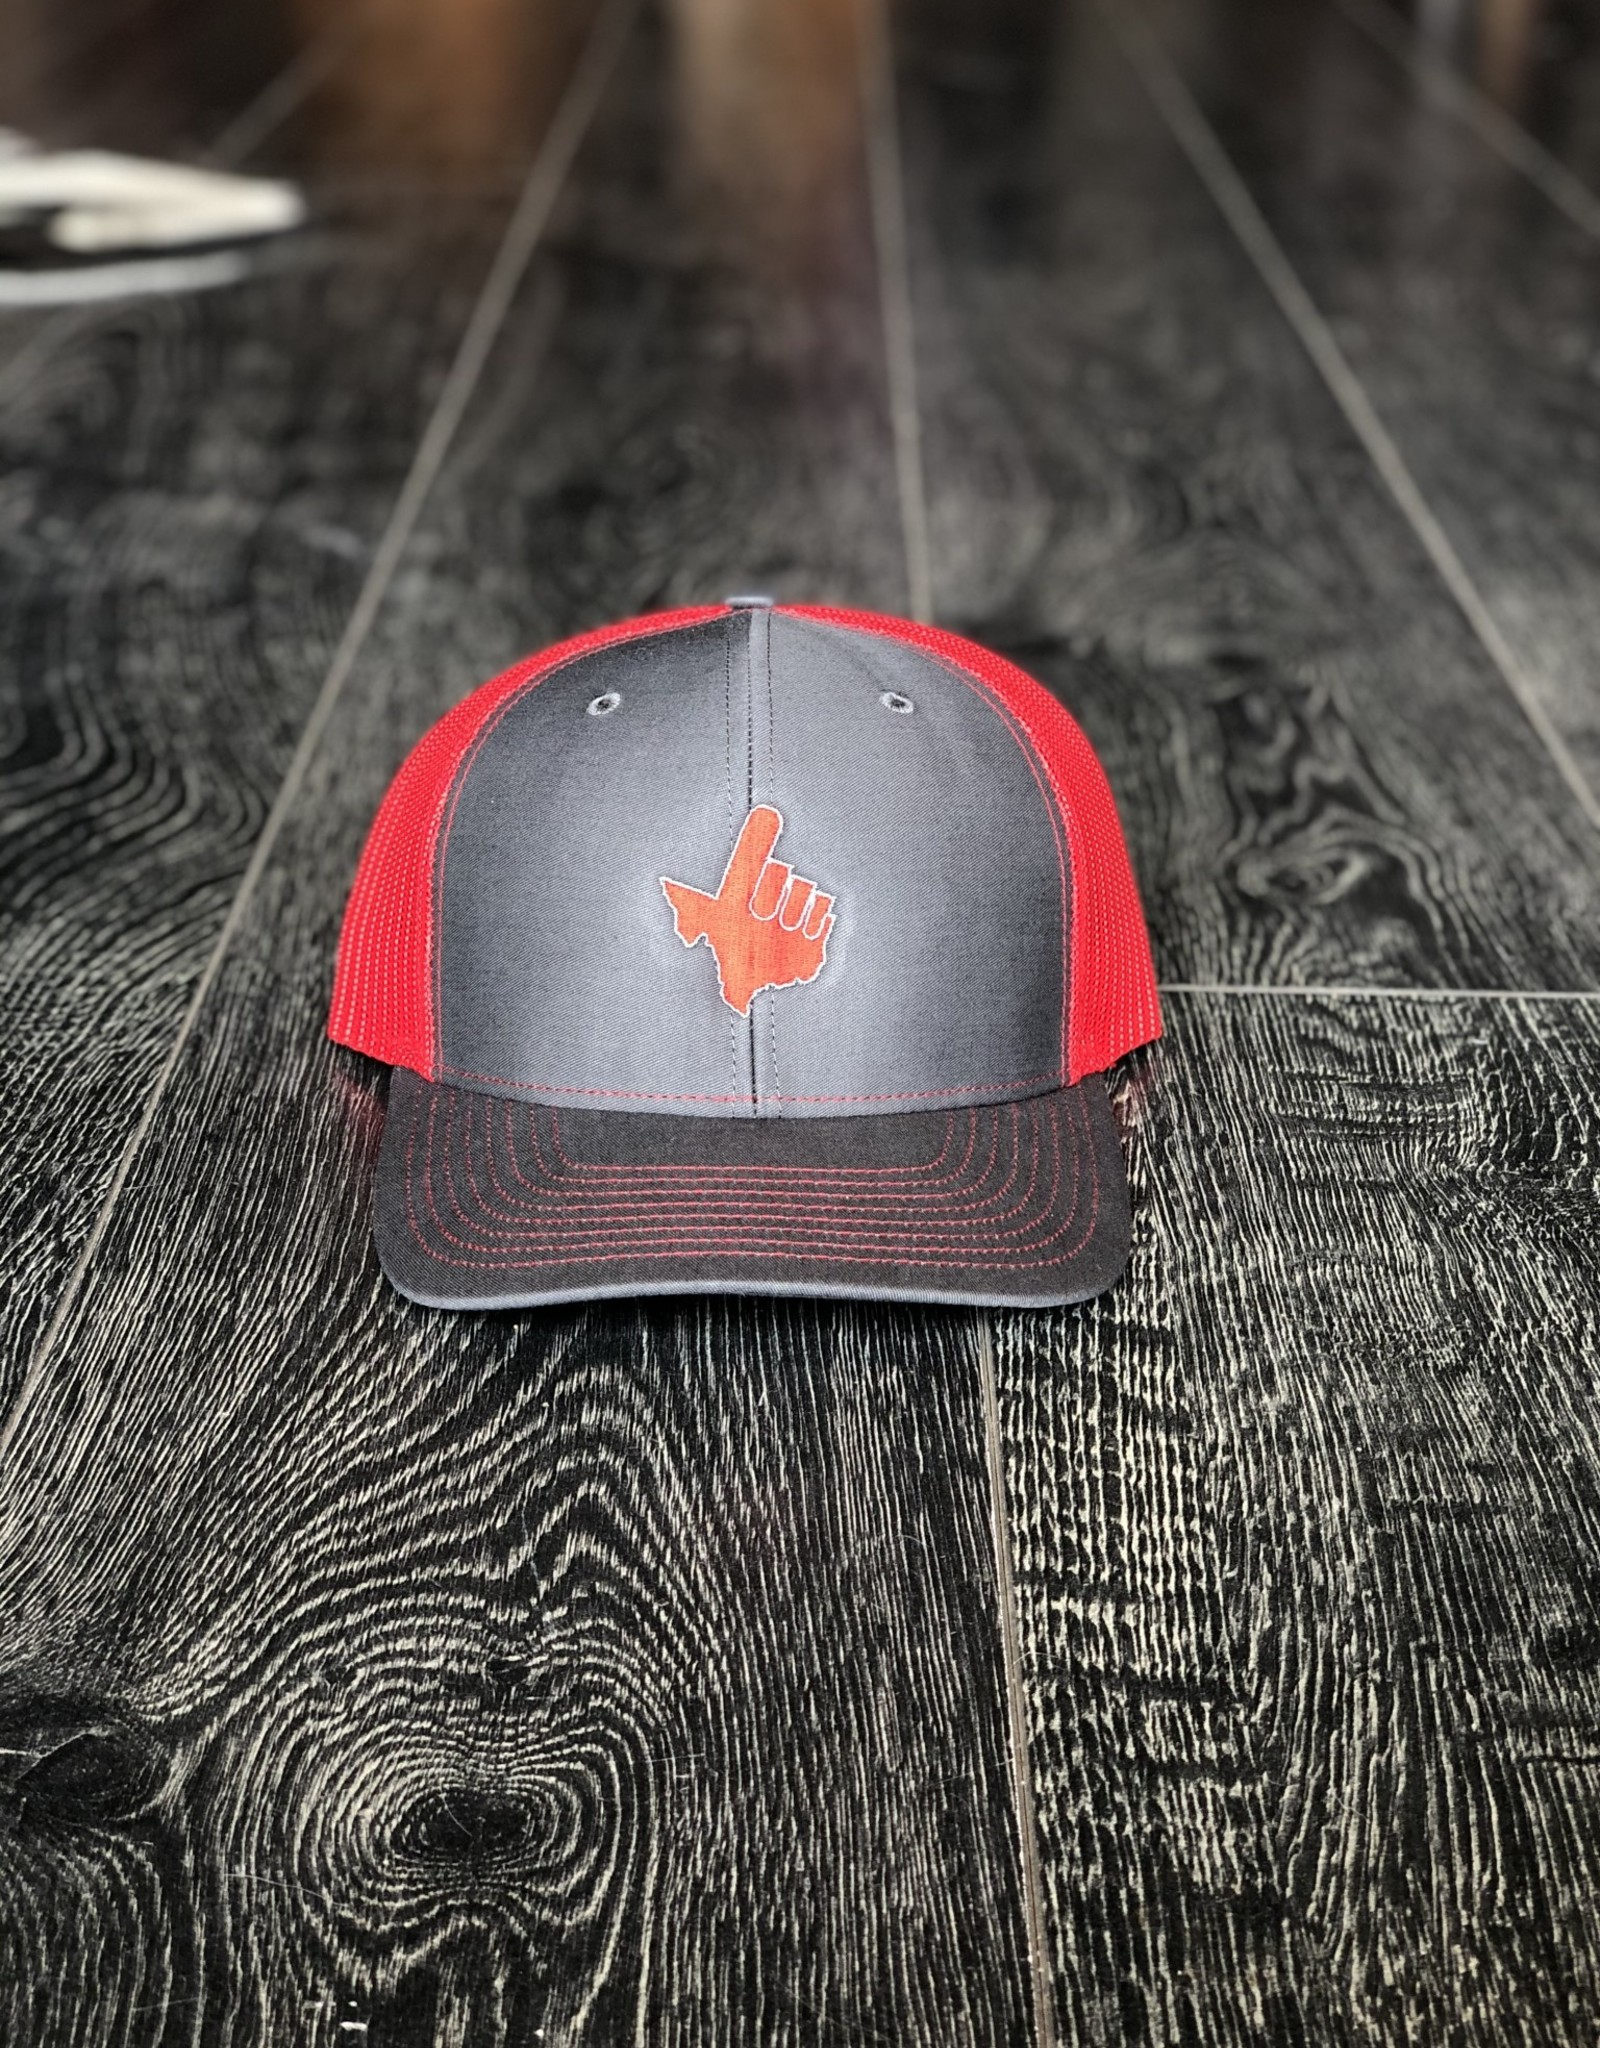 Stag GameDay Richardson 112 Charcoal/Red Texas Hand